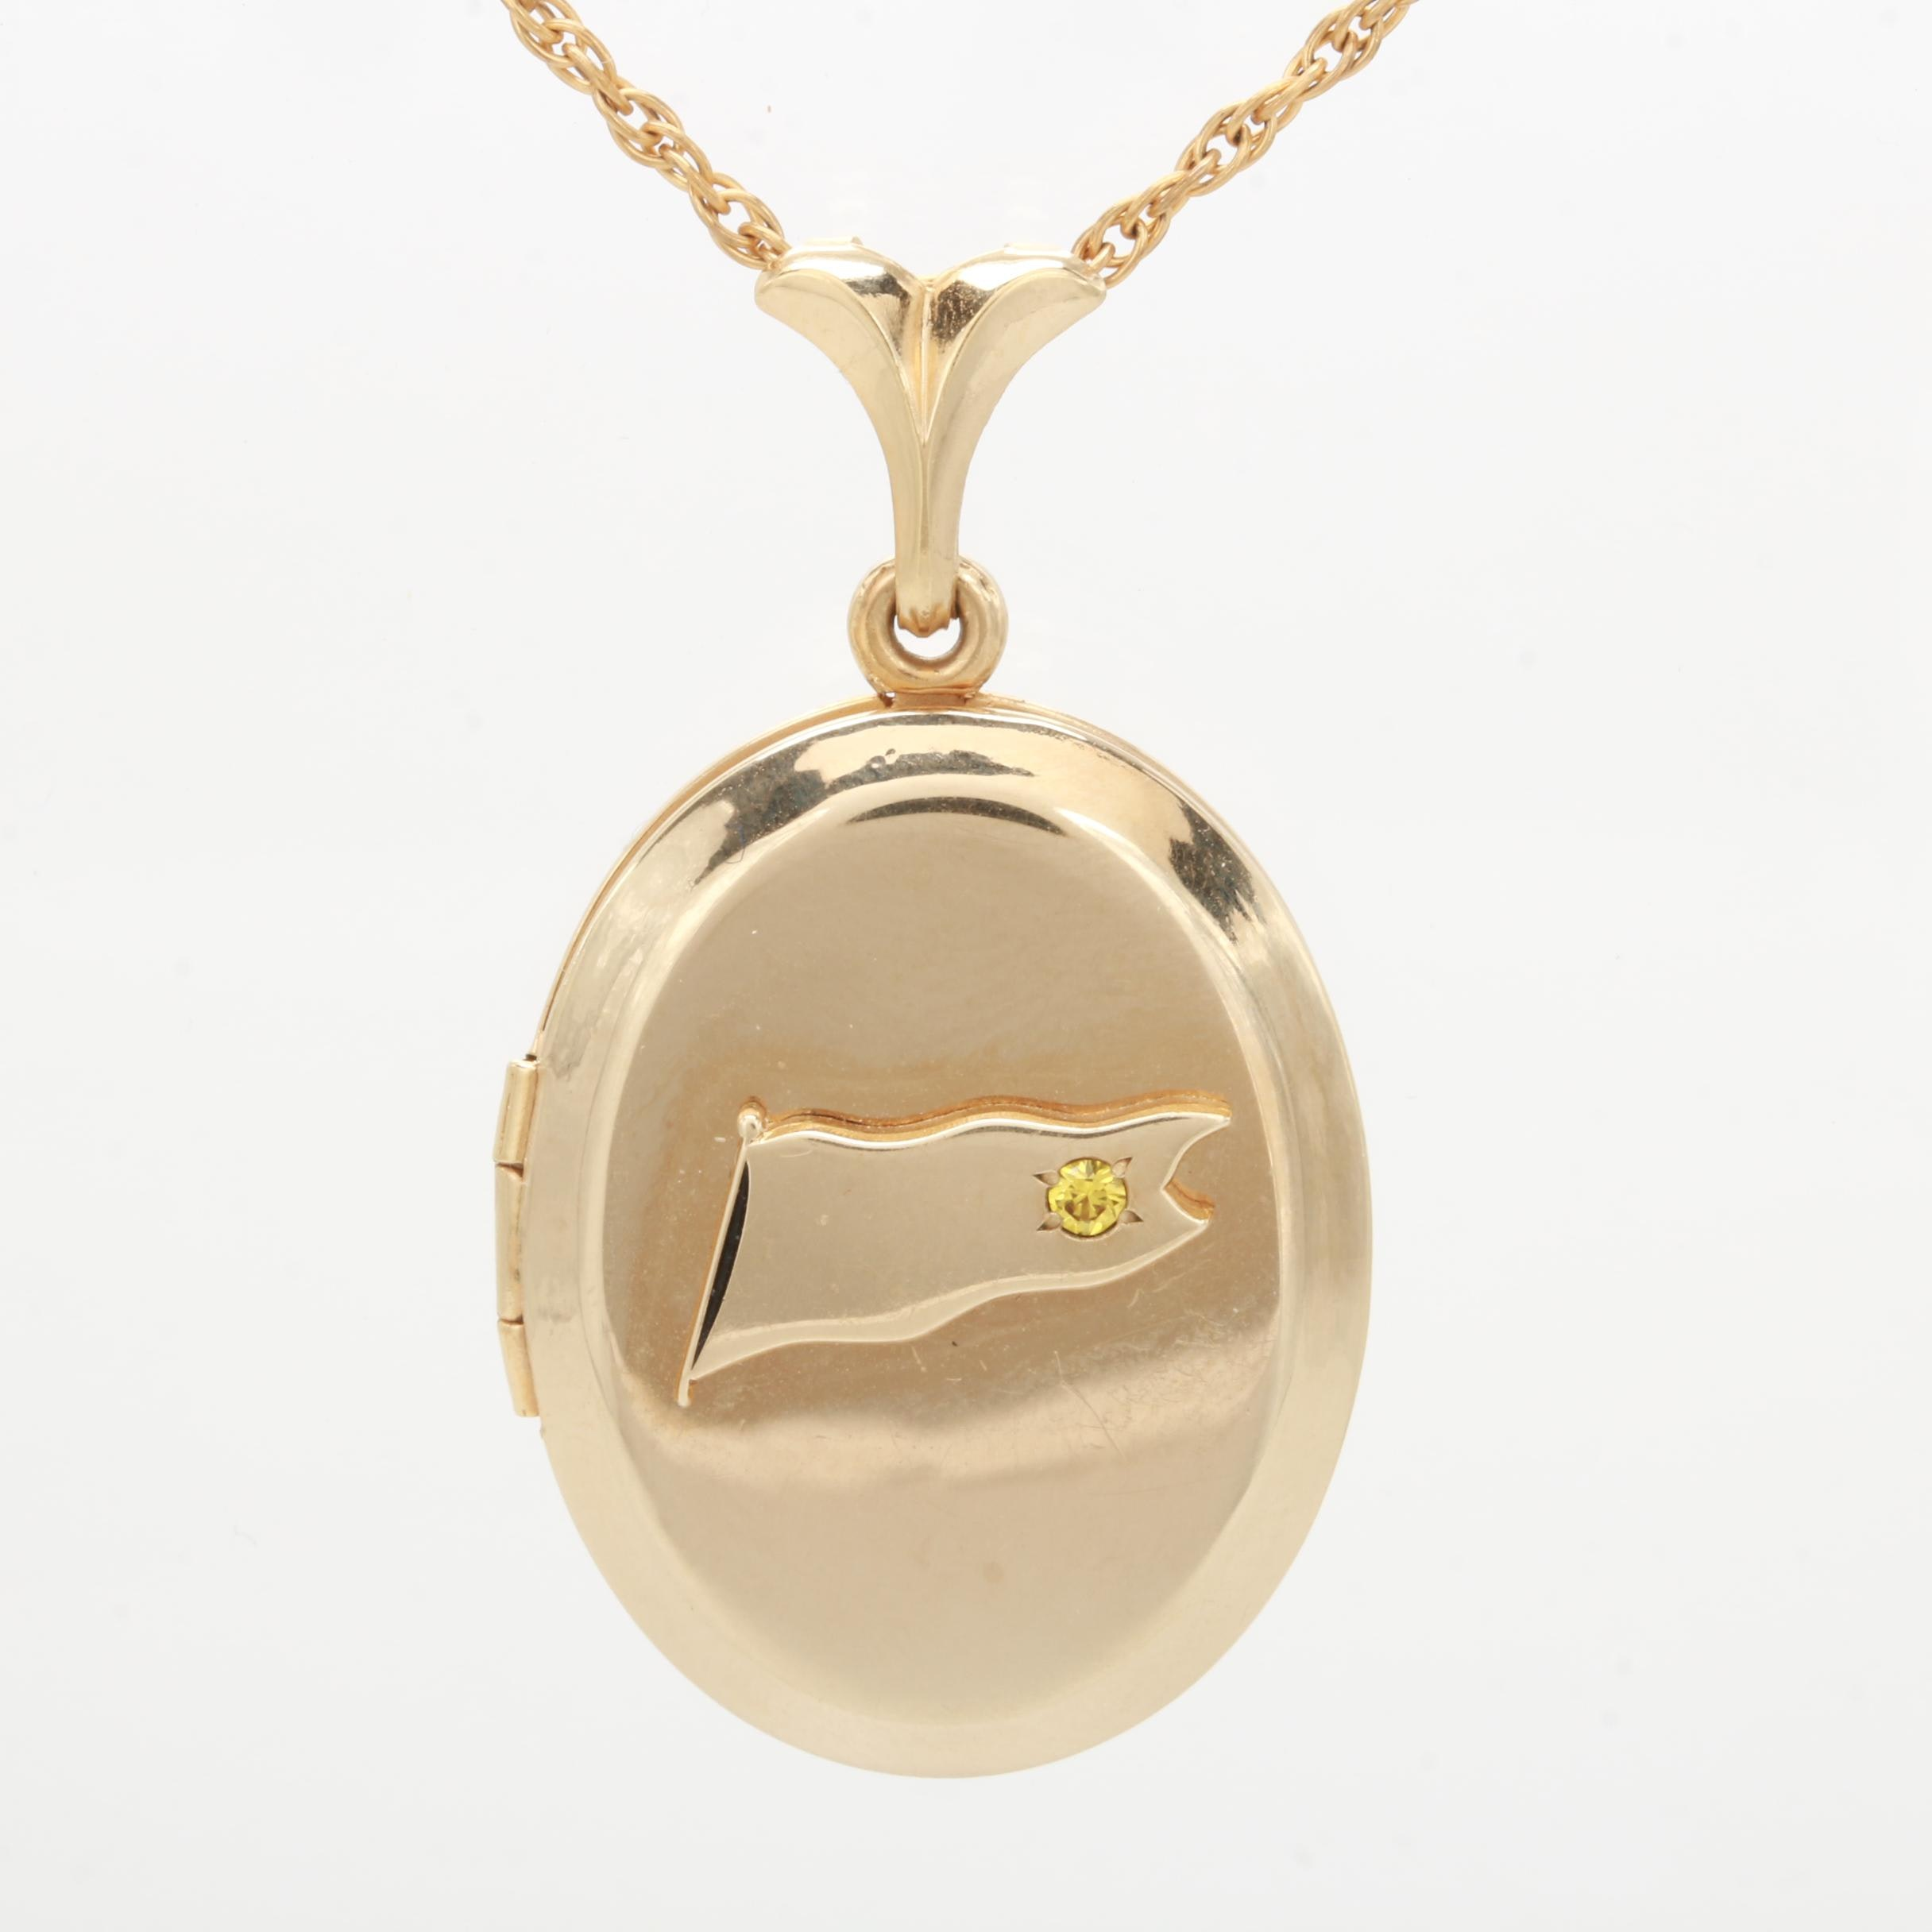 Gold Filled Locket Pendant Necklace with Synthetic Yellow Sapphire Accent